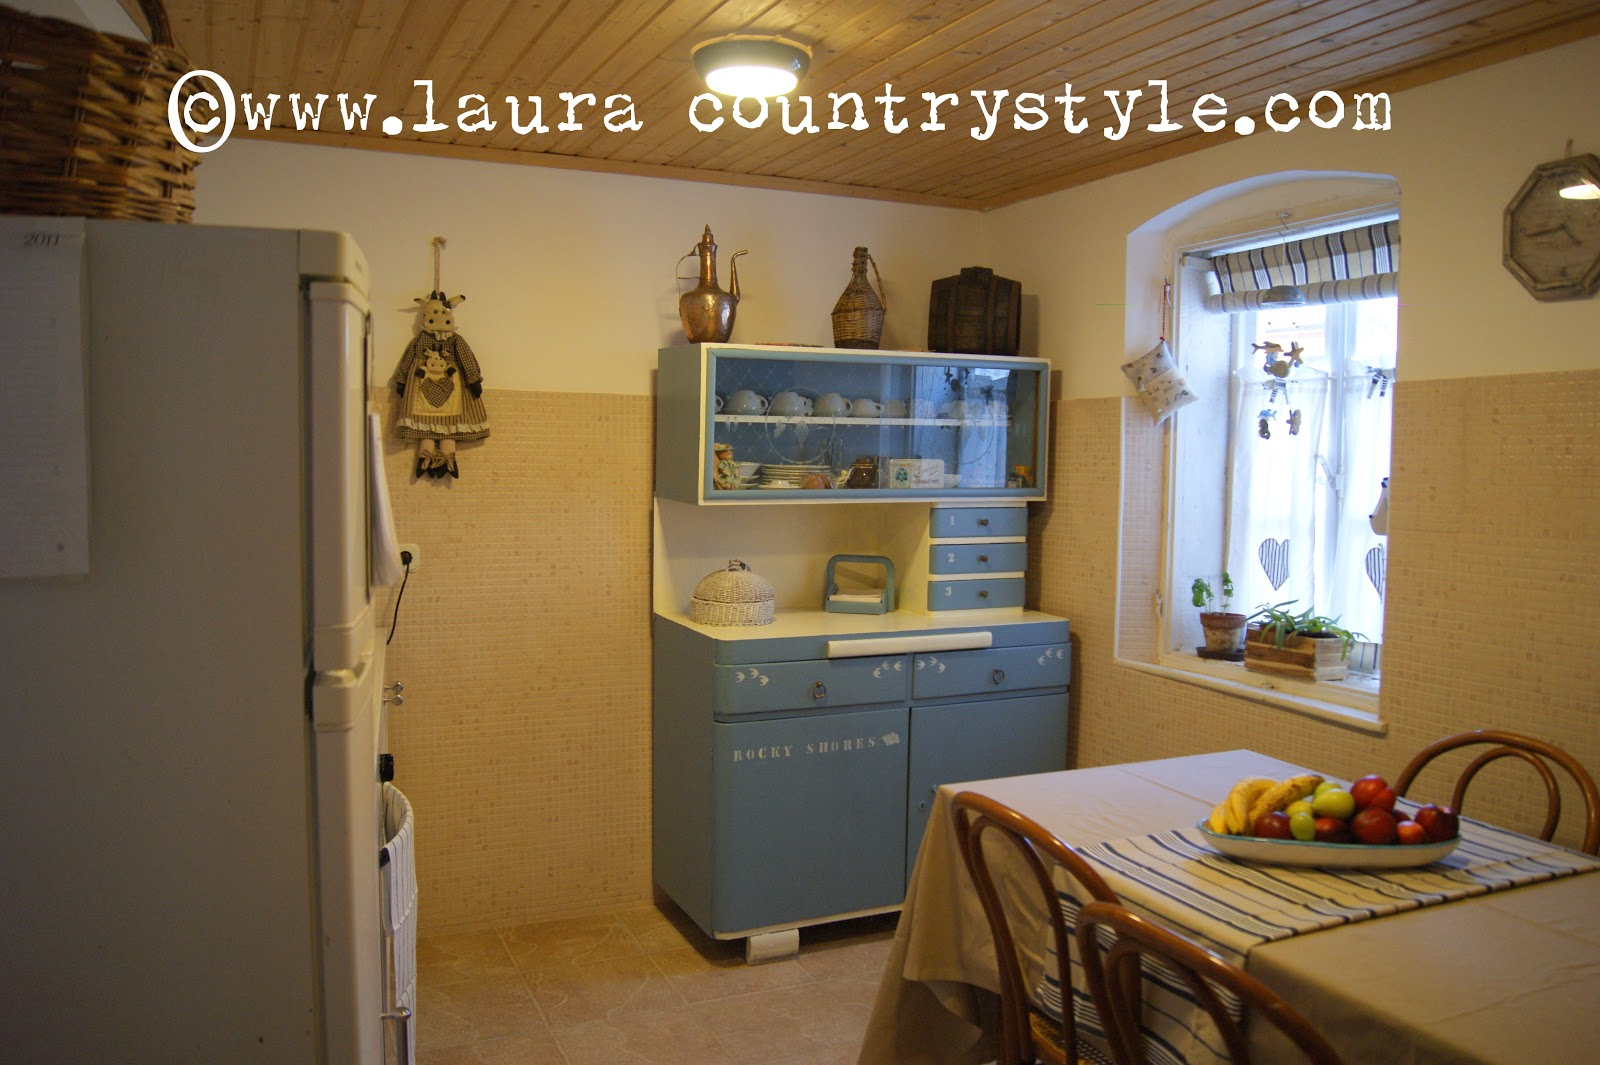 Country style: Welcome in our kitchen